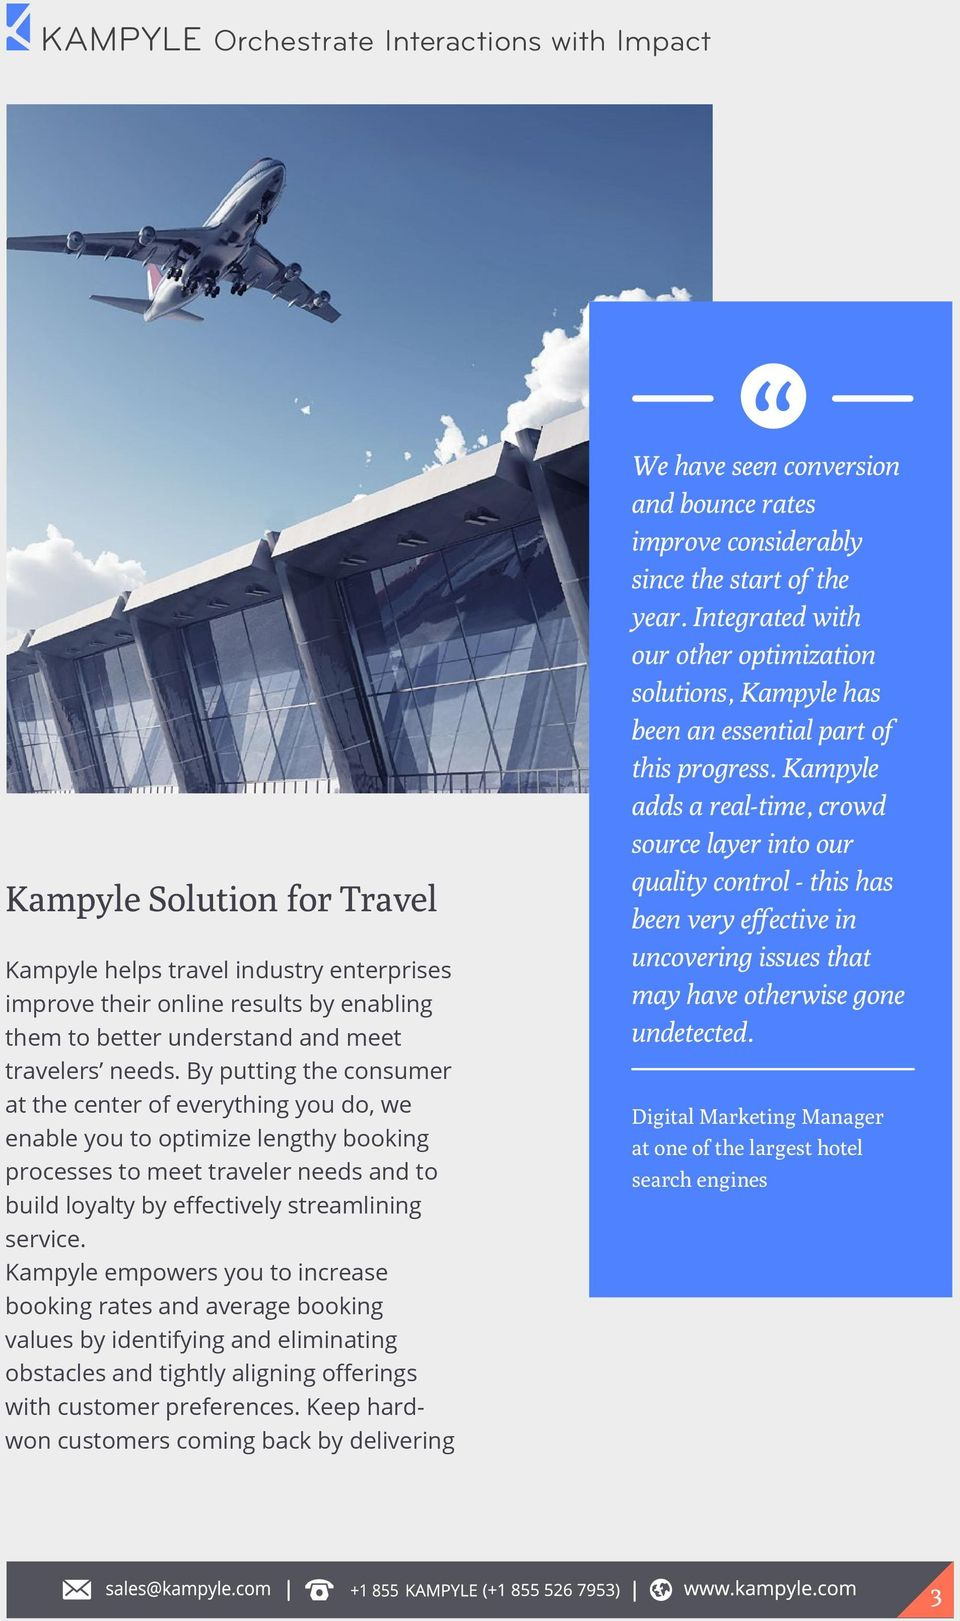 Kampyle empowers you to increase booking rates and average booking values by identifying and eliminating obstacles and tightly aligning offerings with customer preferences.